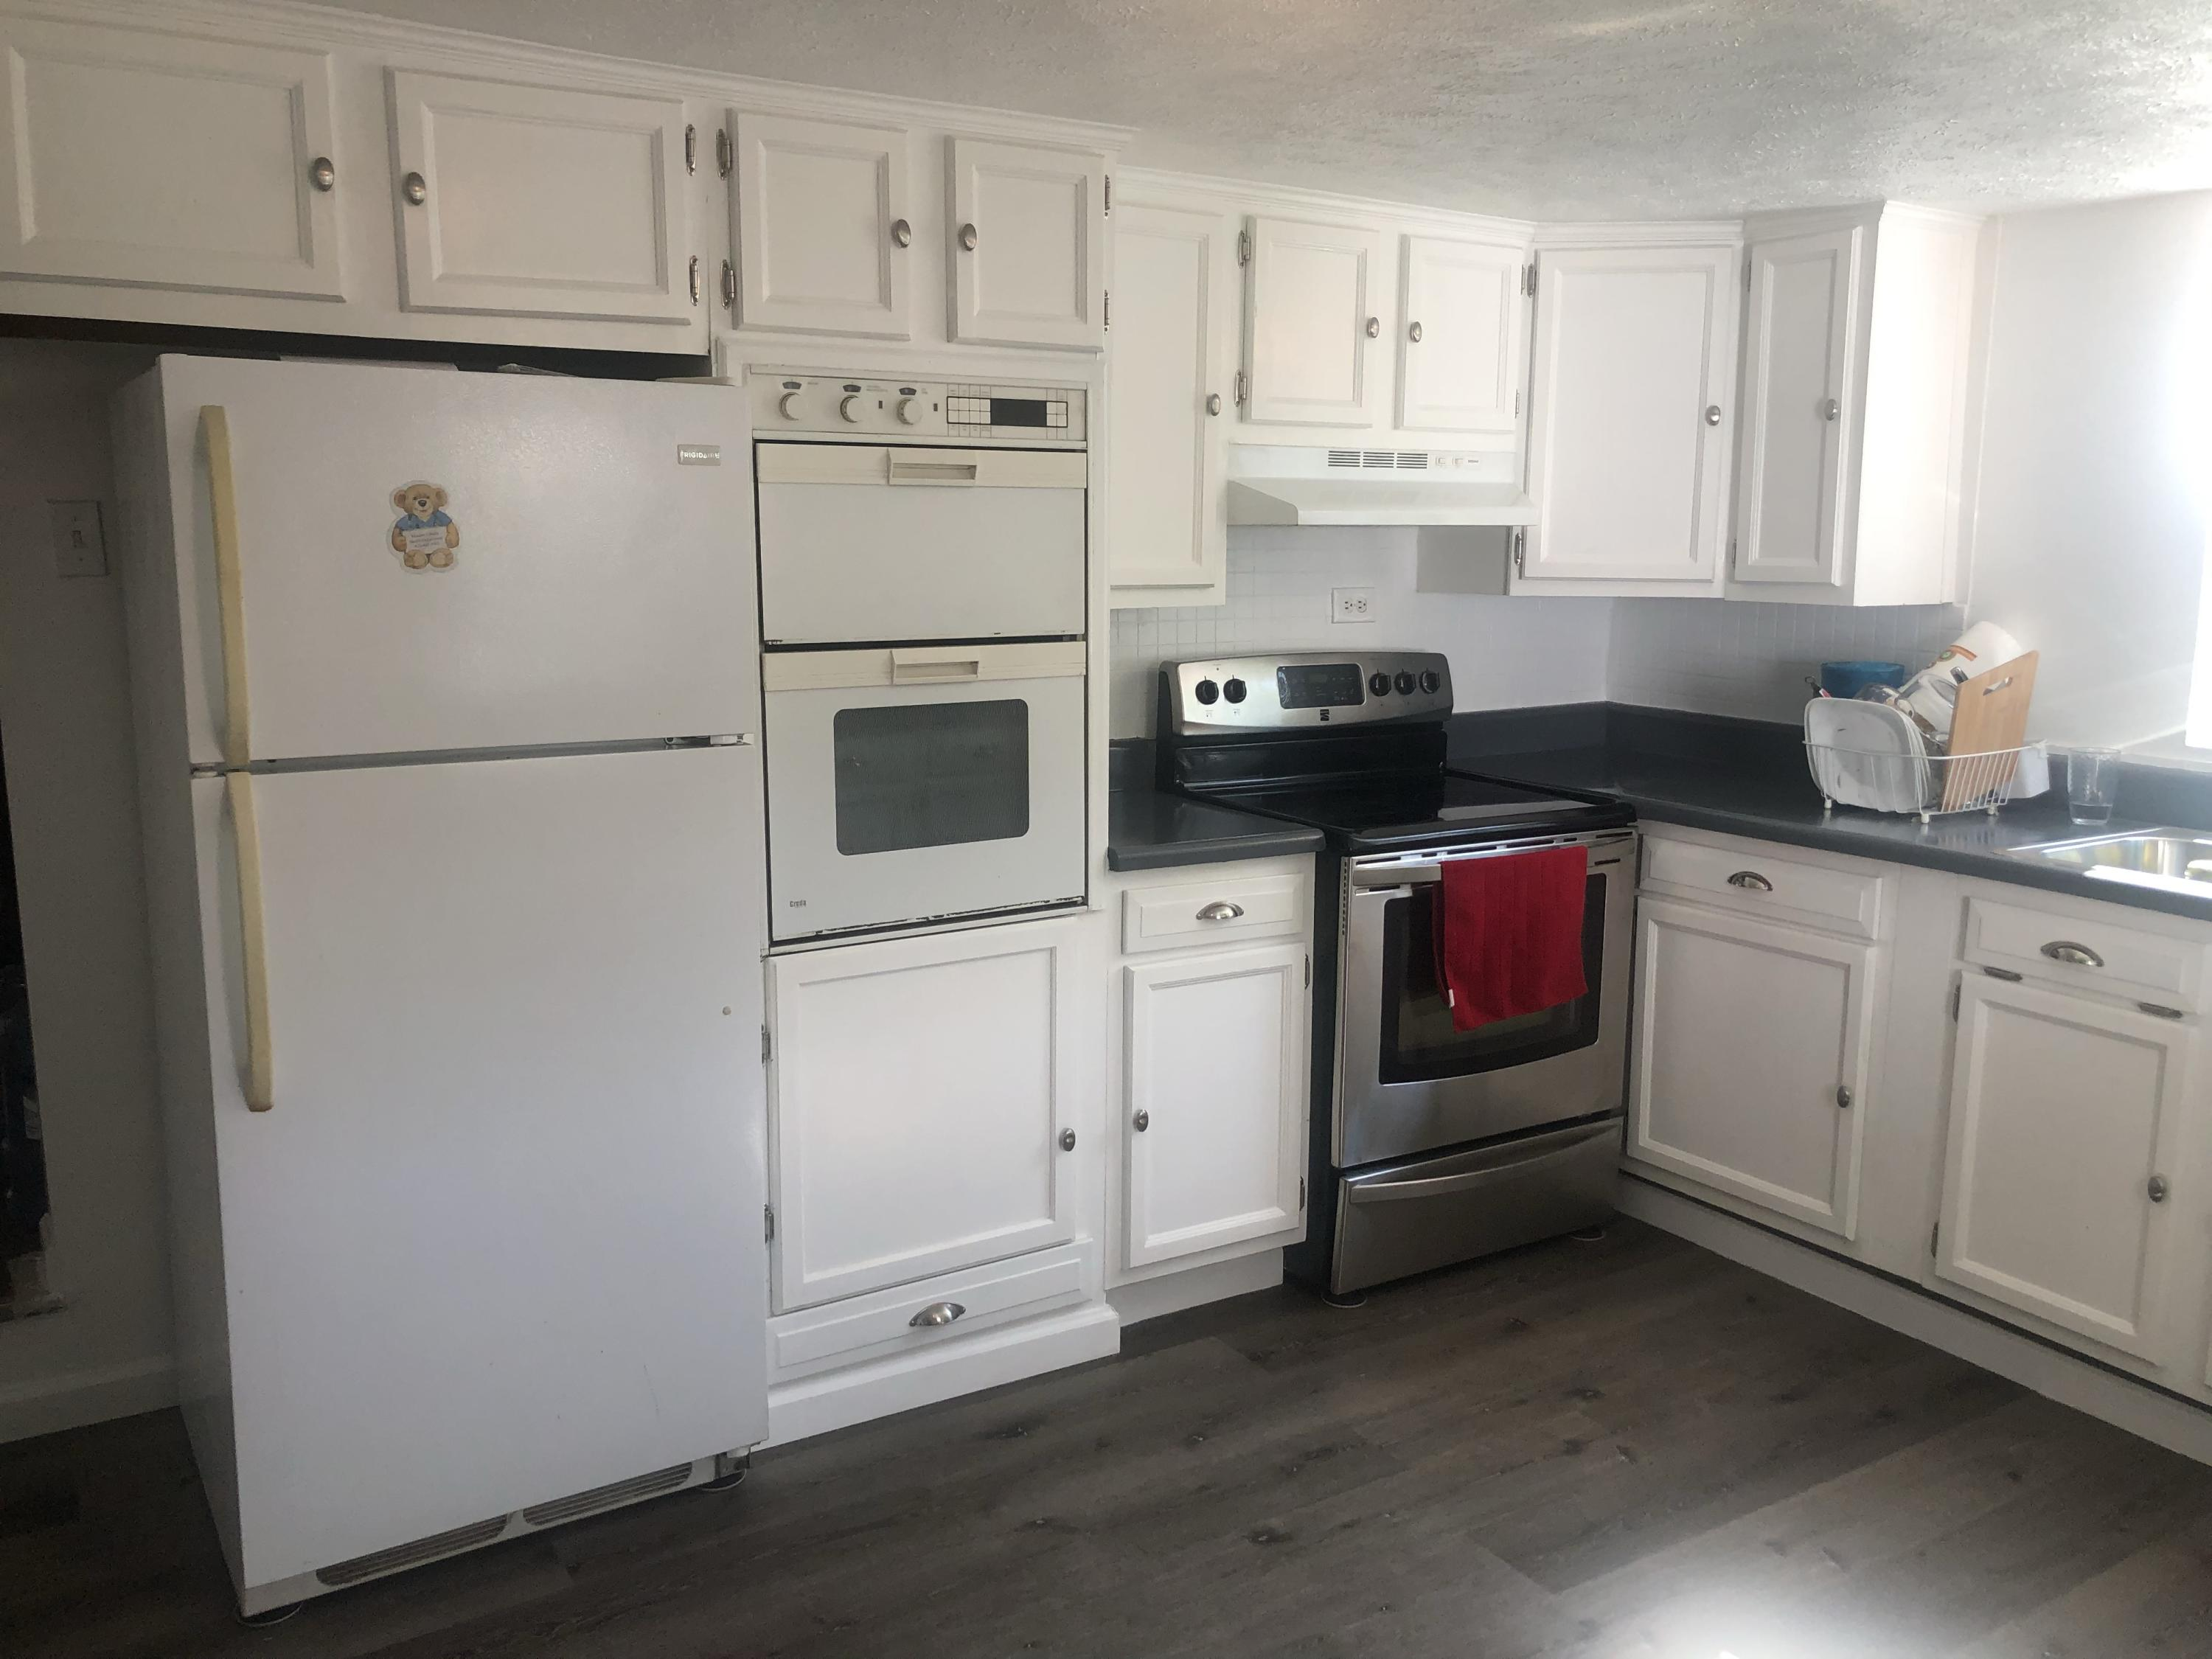 116 Dixon St, Sweetwater, Tennessee 37874, 3 Bedrooms Bedrooms, ,2 BathroomsBathrooms,Single Family,For Sale,Dixon,1125538